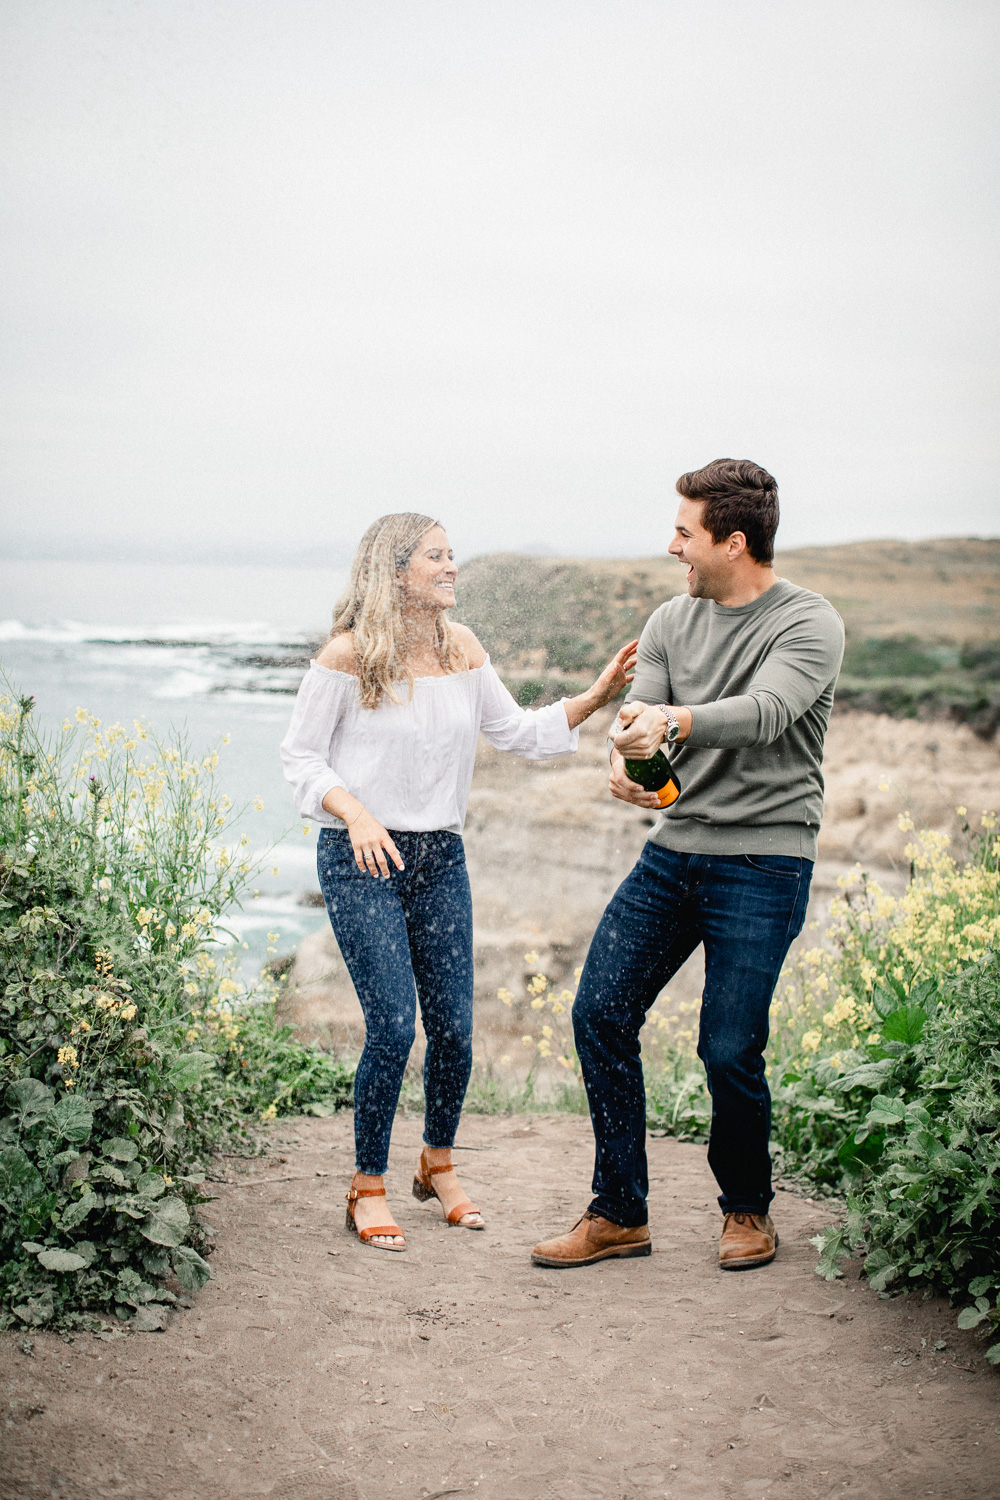 Ashley-Rae-Studio-San-Luis-Obispo-Engagement-Session-Santa-Barbara-Wedding-Photographer-199.jpg